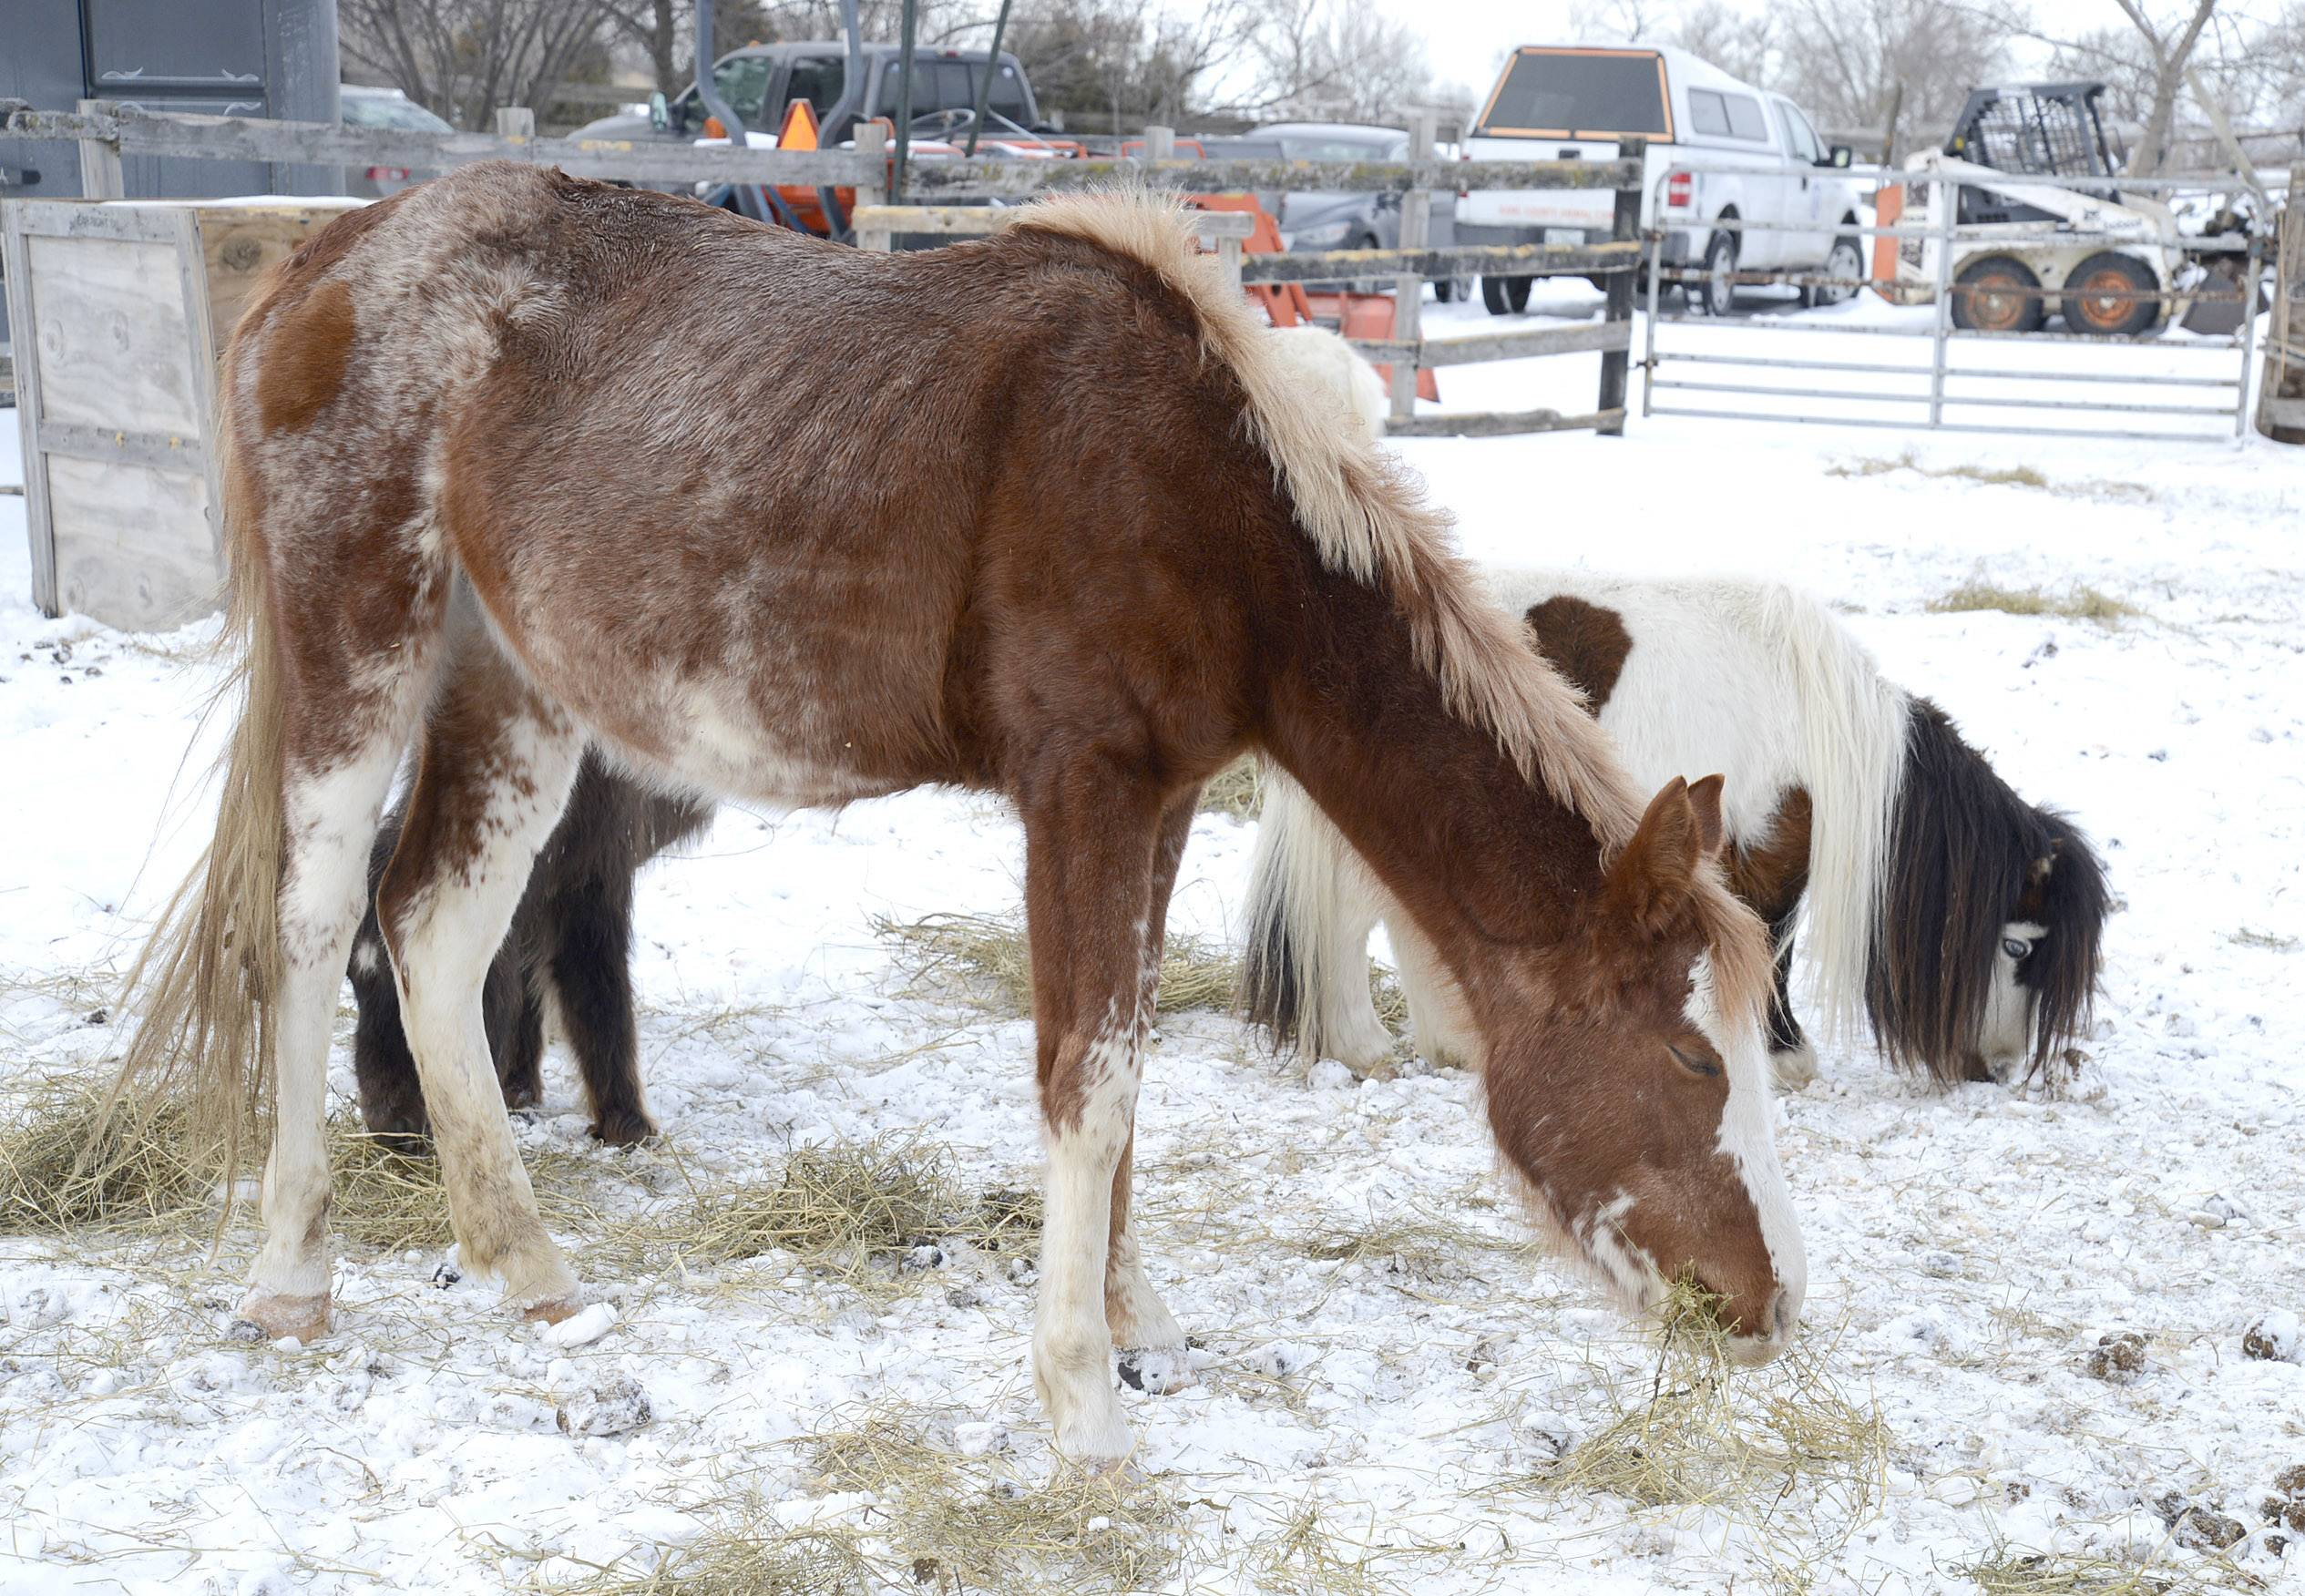 A horse feeds on hay on a Hampshire farm in March after Kane County Animal Control officials seized it and other animals from its owner, who has been charged with neglect and cruelty to animals.